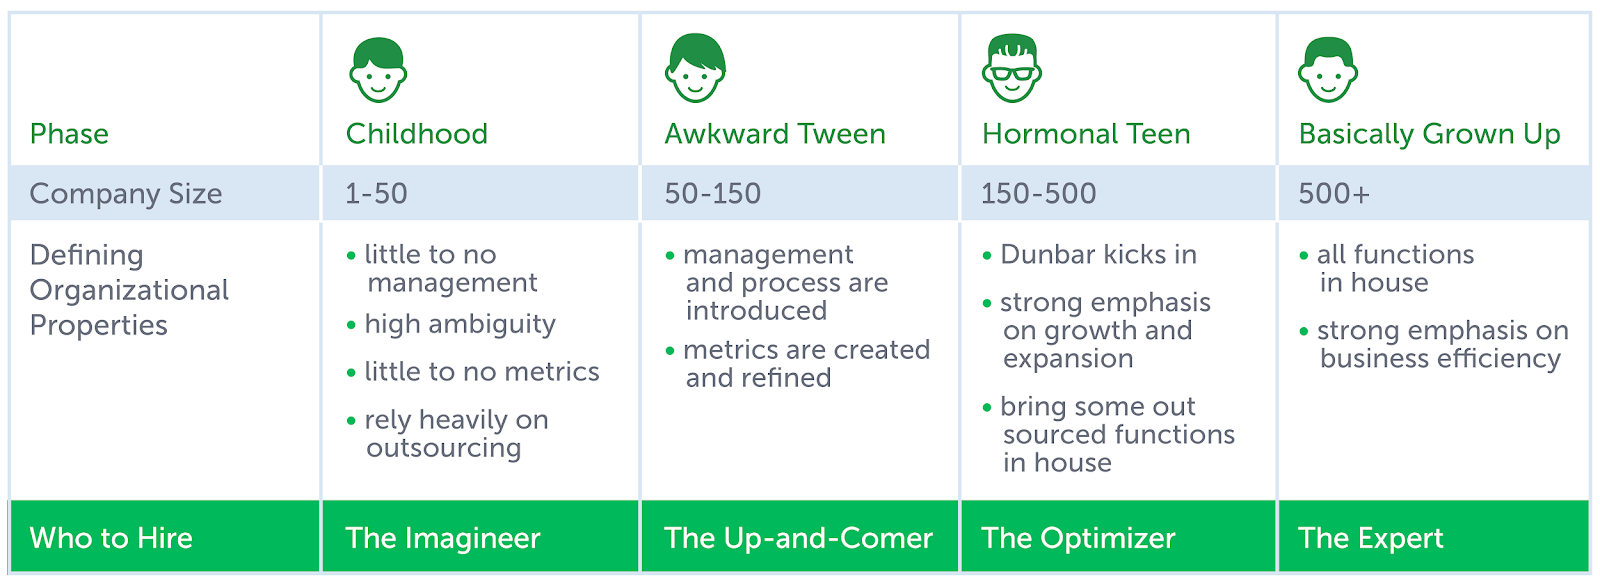 How to Walk the Tightrope Between Consistency and Growth